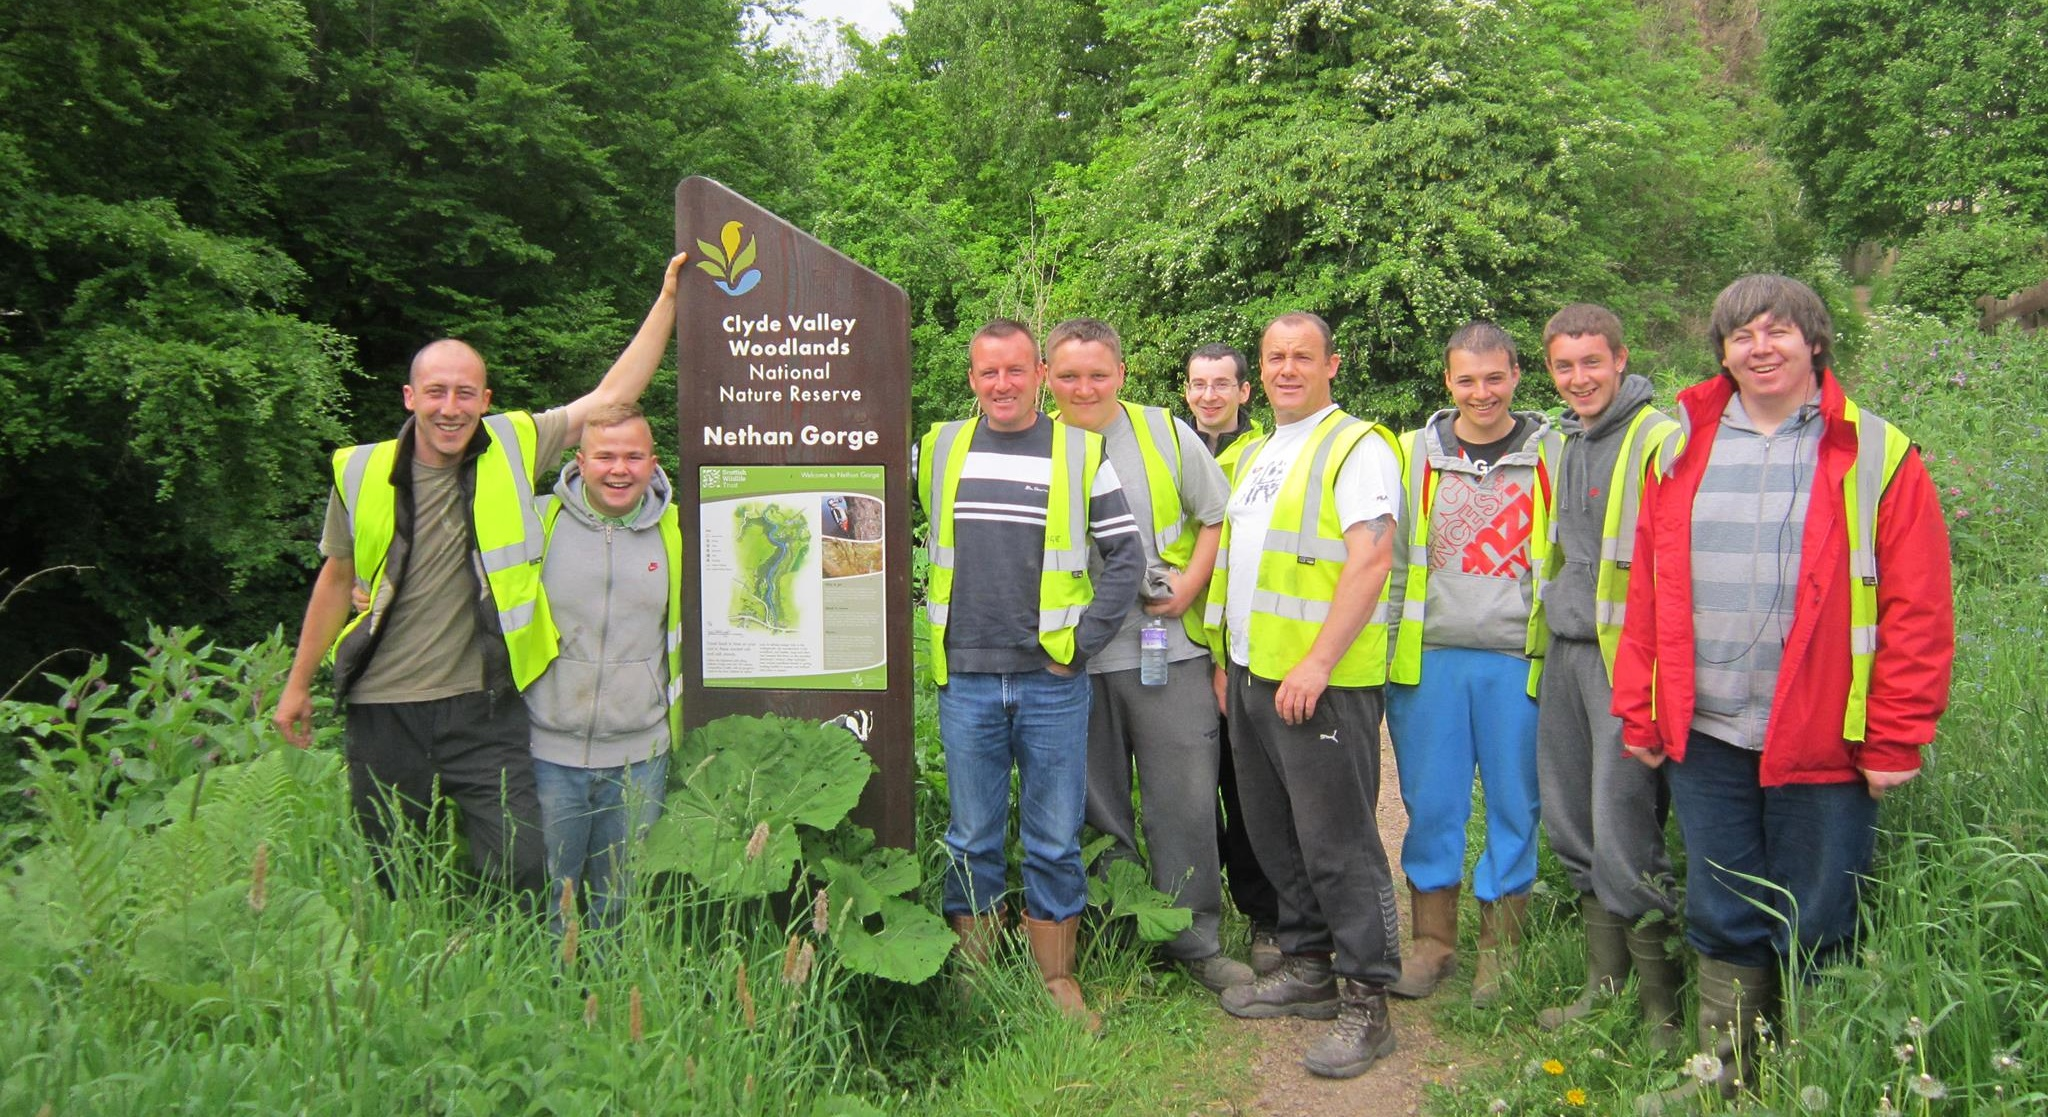 Clydesdale Community Initiatives help maintain pathways in Nethan Gorge